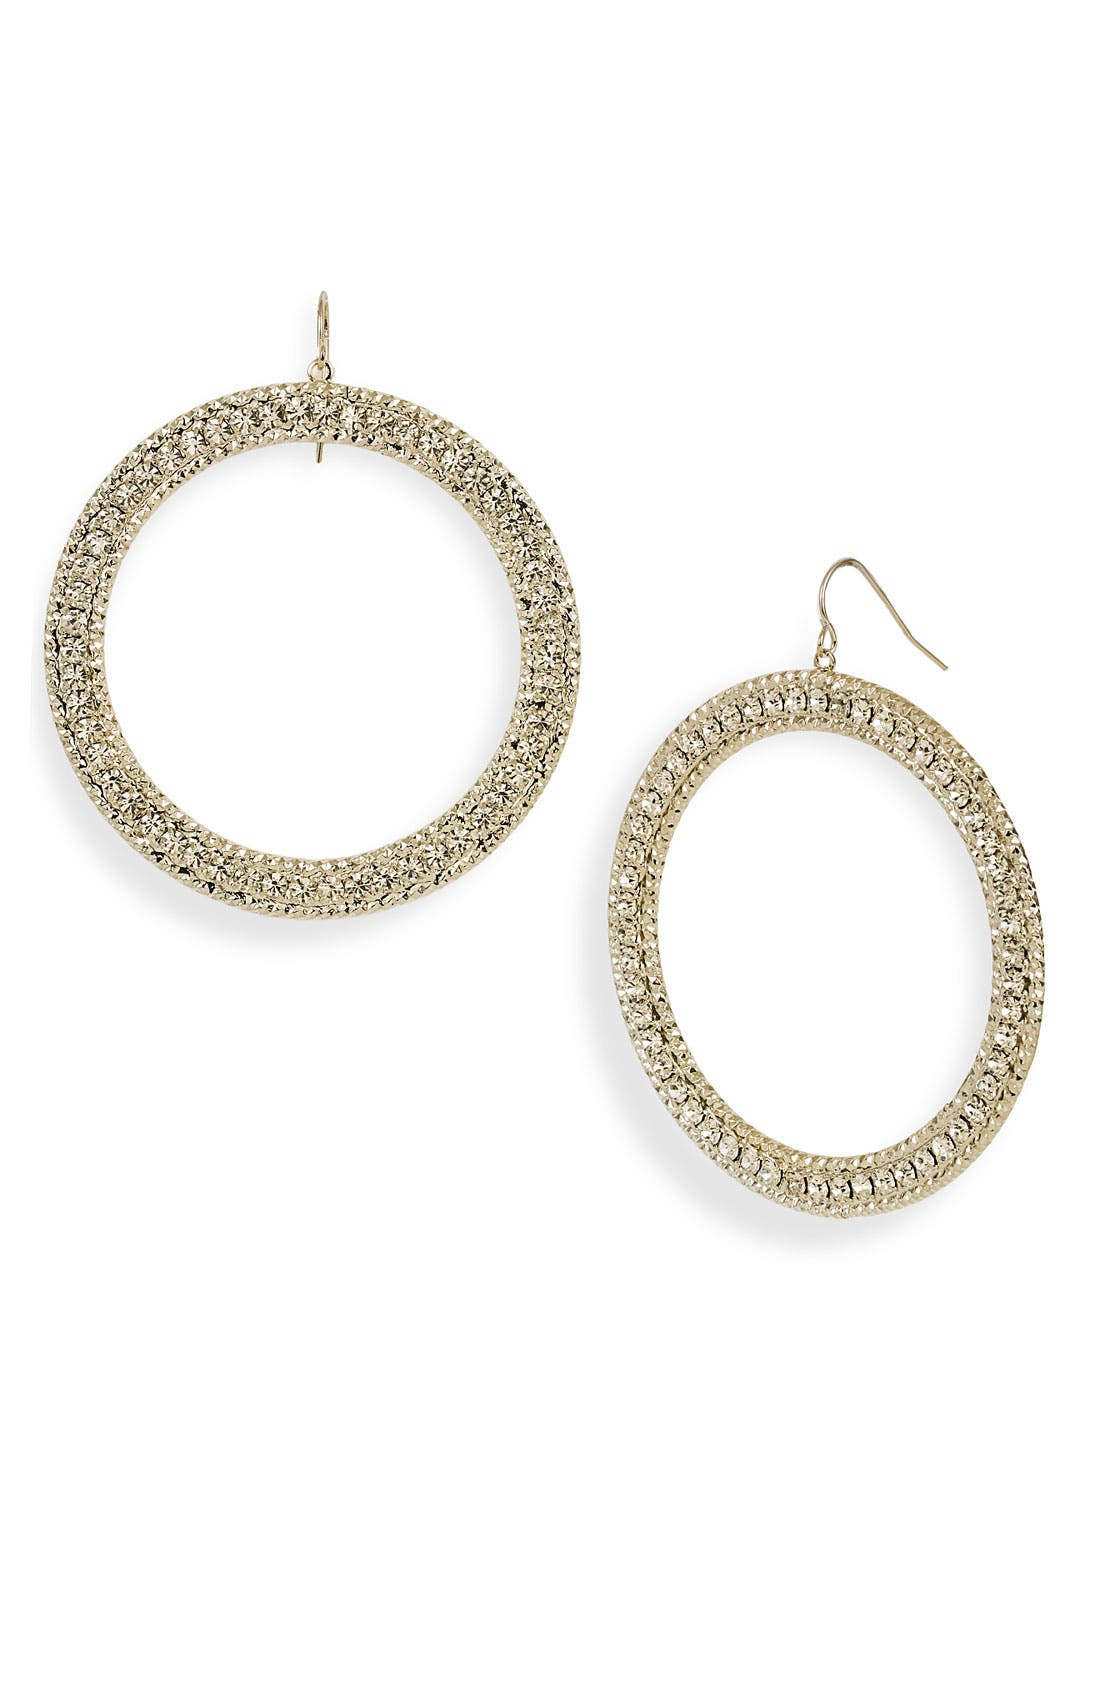 Alternate Image 1 Selected - Natasha Couture Frontal Hoop Earrings